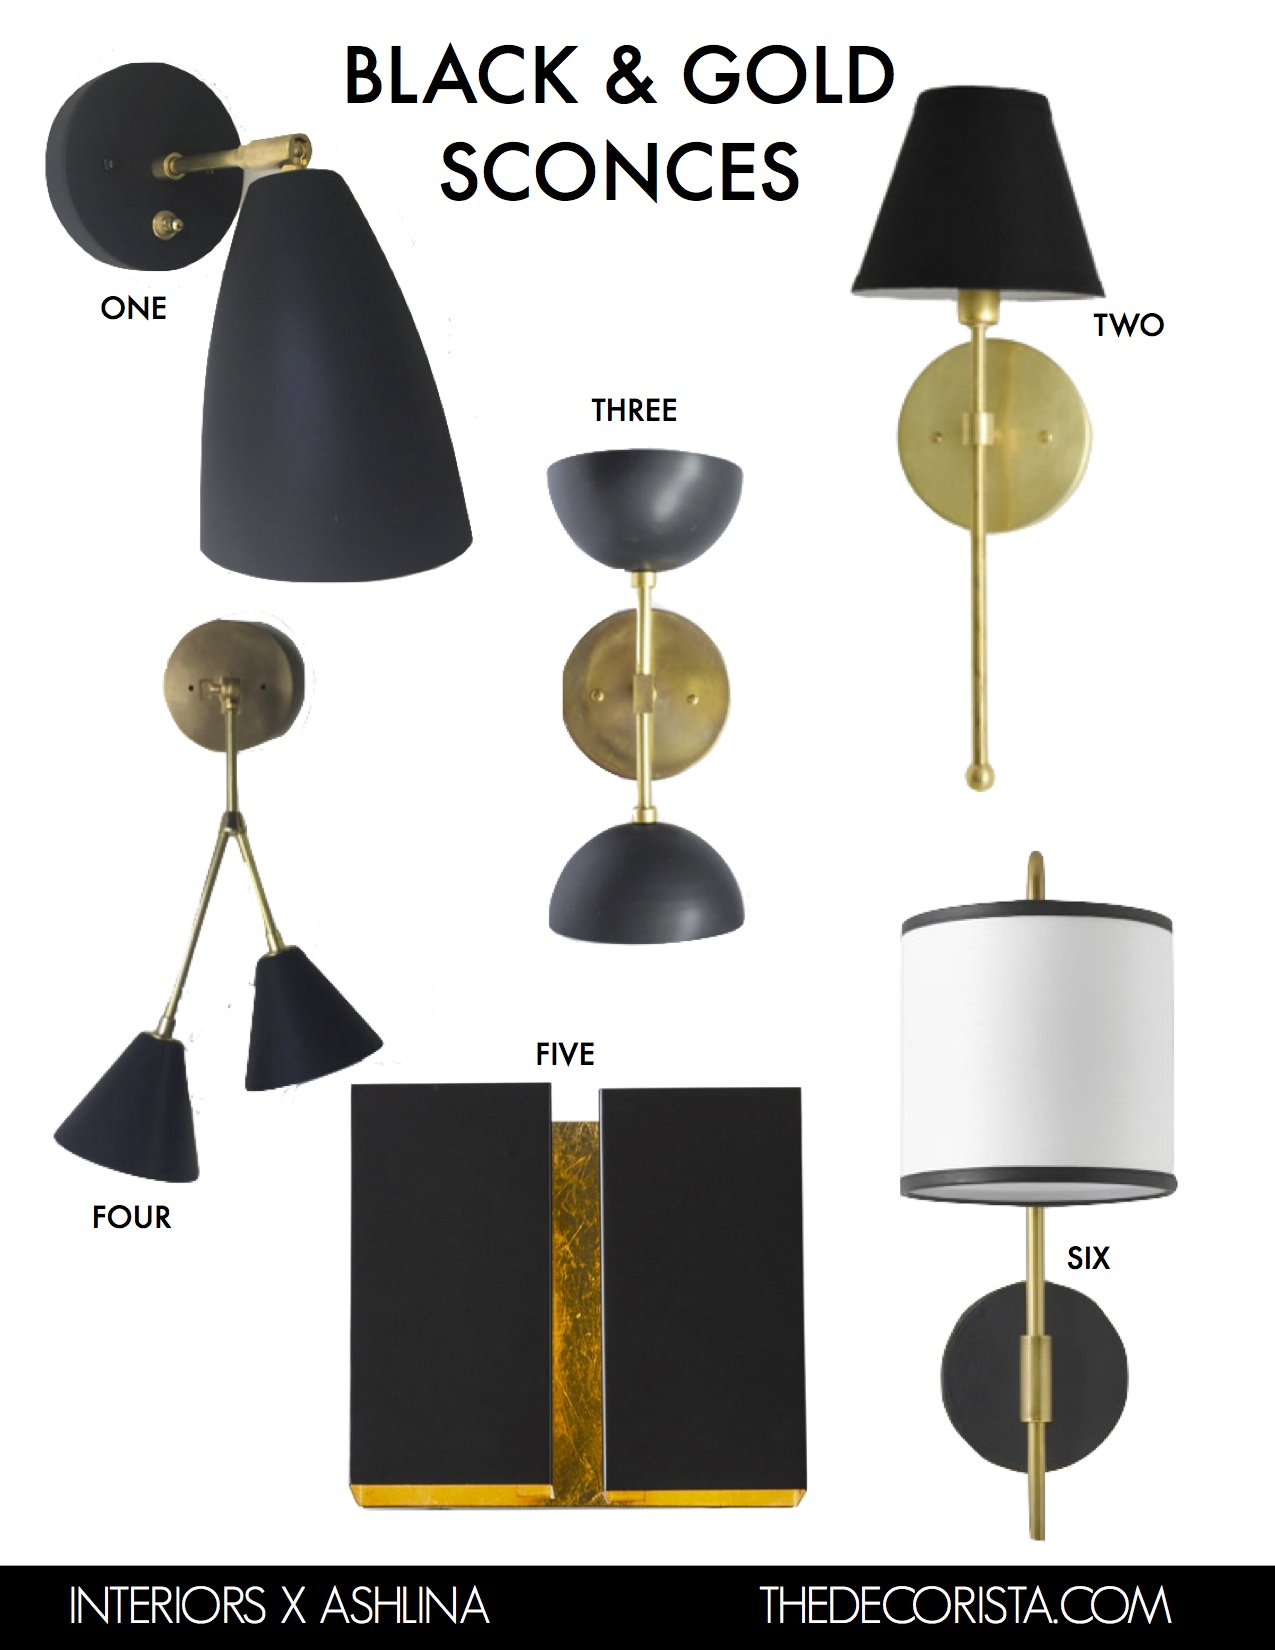 BLACK GOLD SCONCES